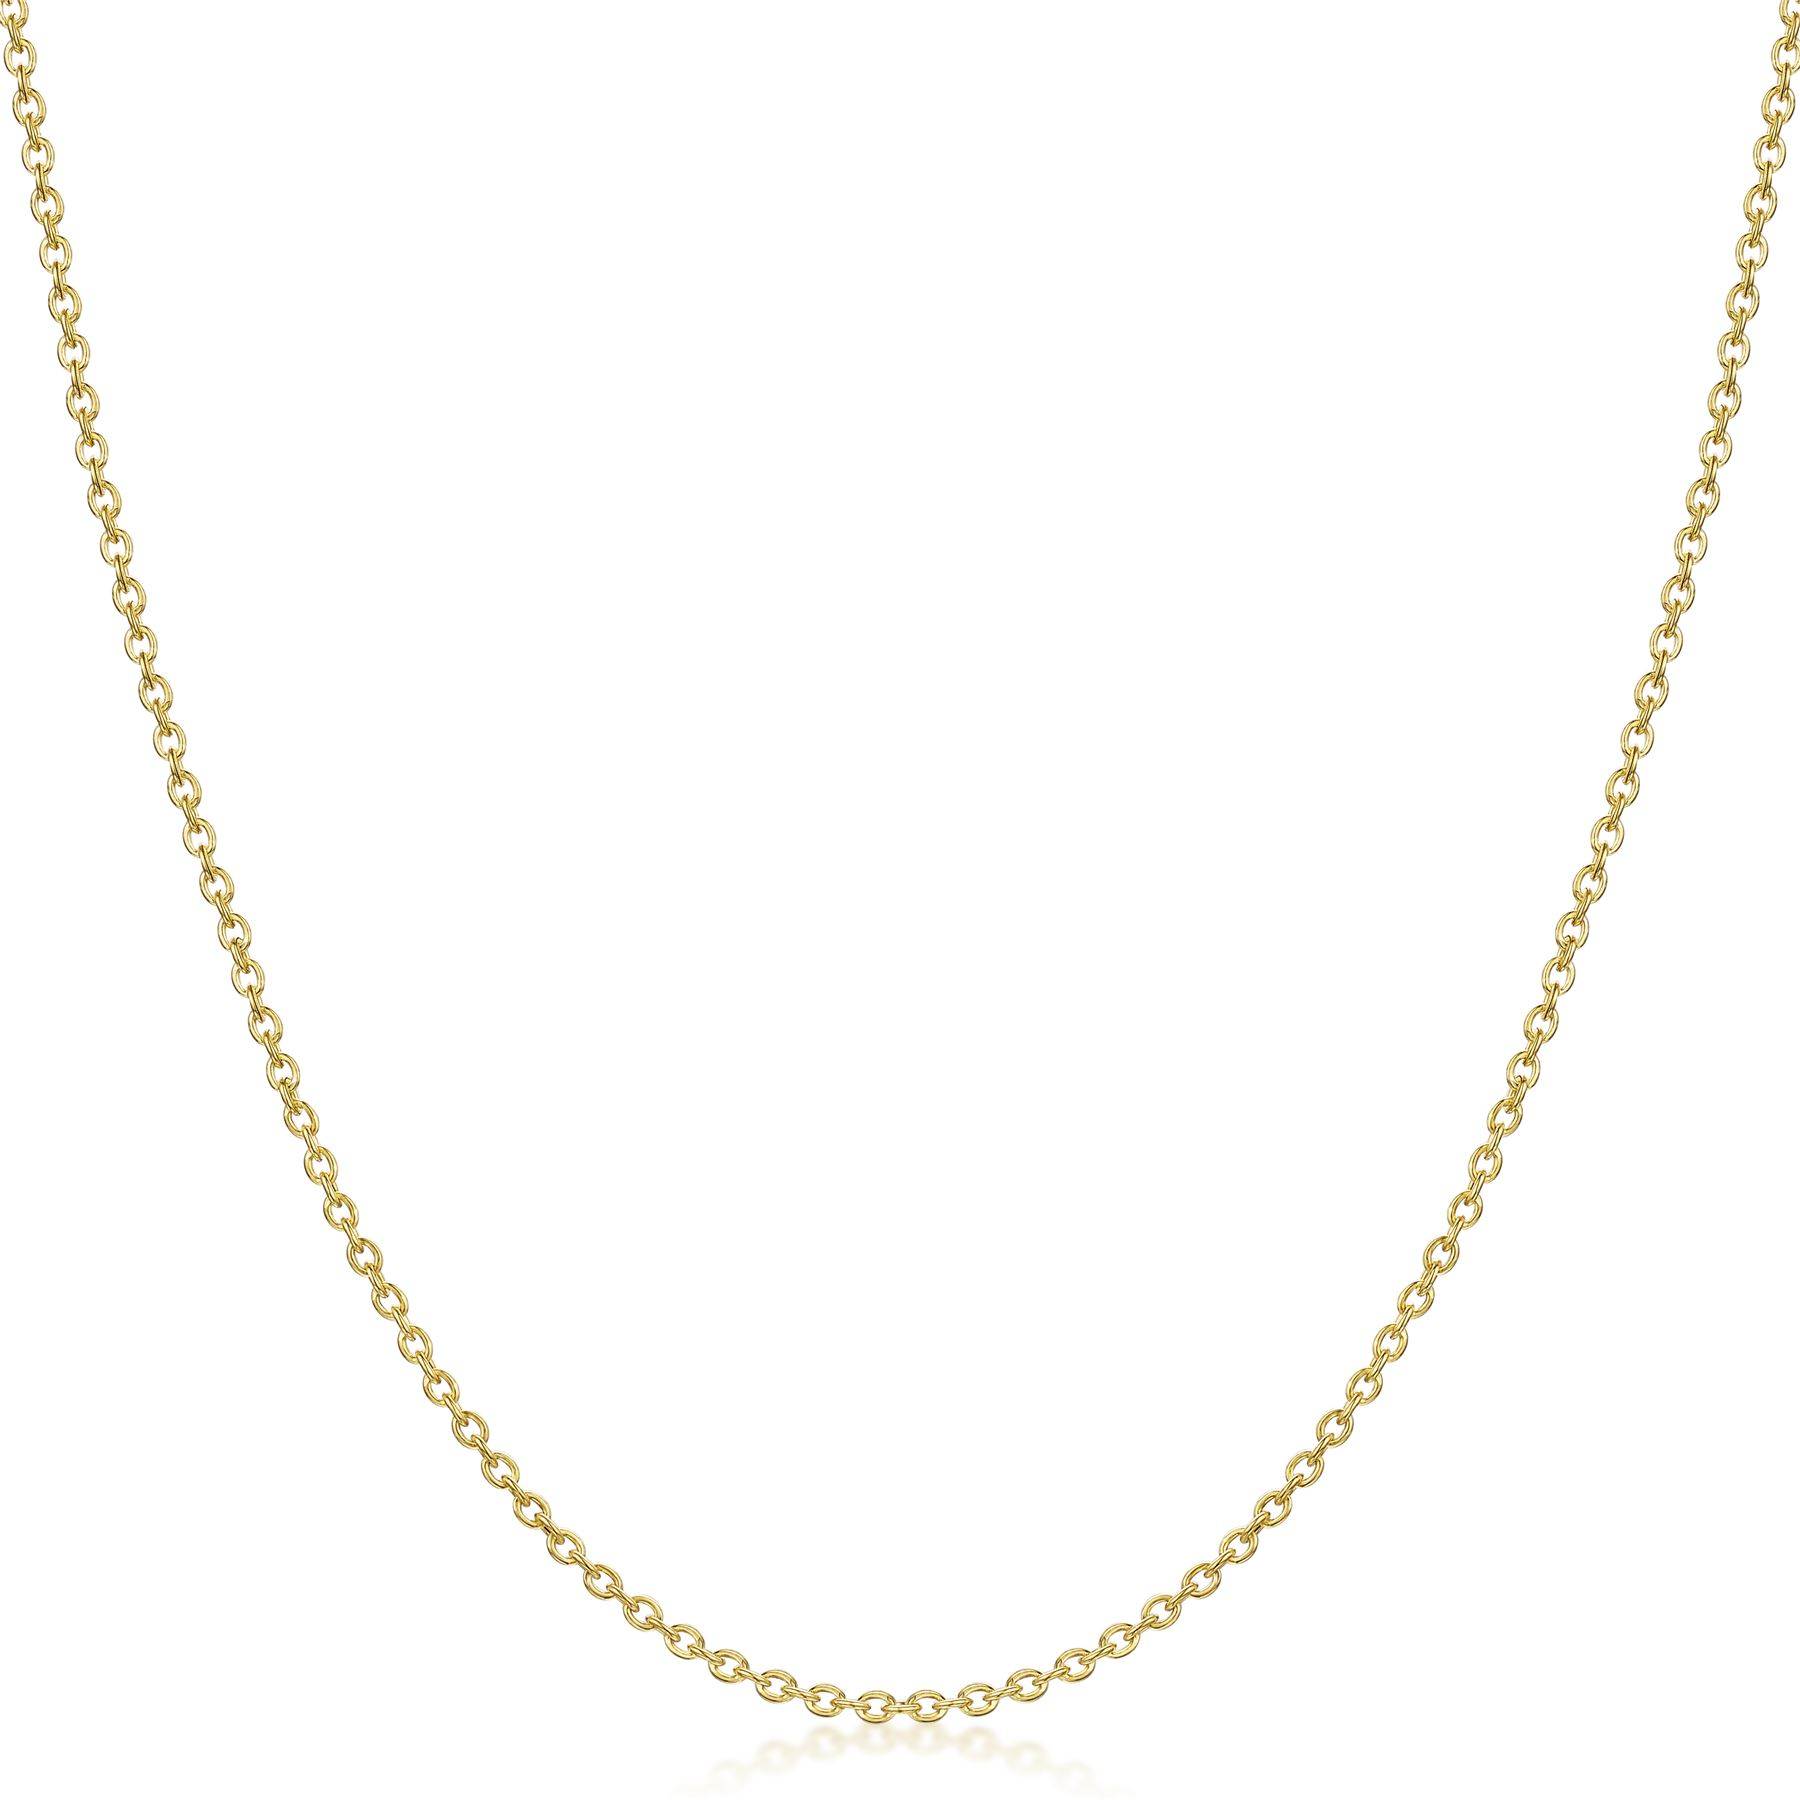 Amberta-Genuine-Real-Yellow-Gold-9K-Solid-Strong-Adjustable-Necklace-Chain-Italy thumbnail 3